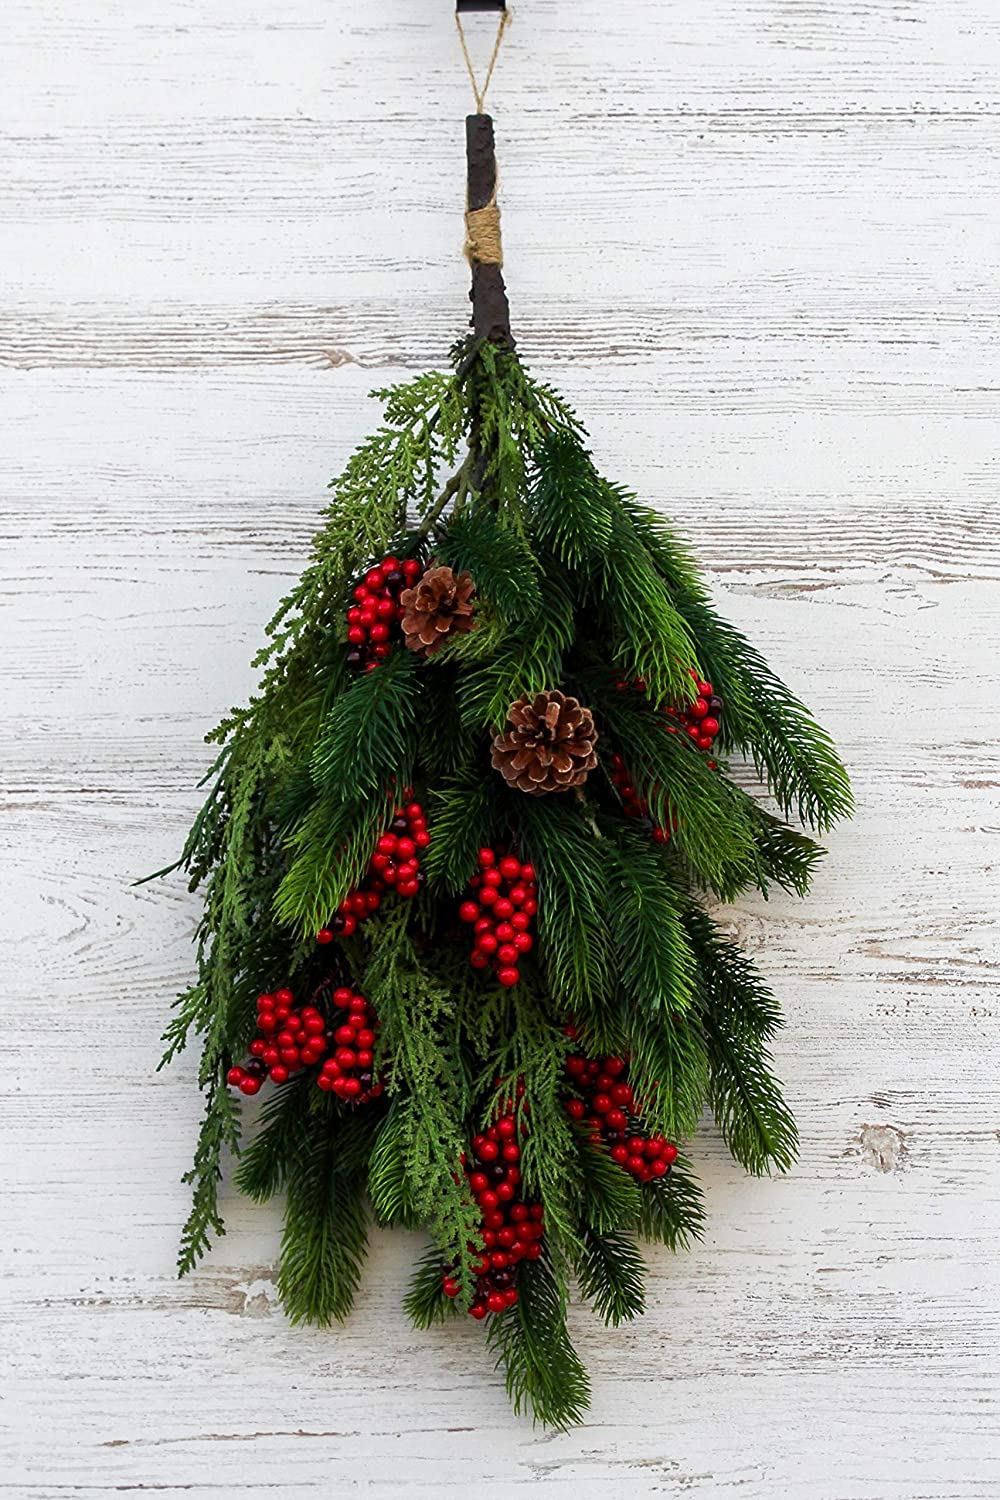 Red Berry /& Pinecone Teardrop Christmas Holiday Swag Darby Creek Trading Real Touch Cedar